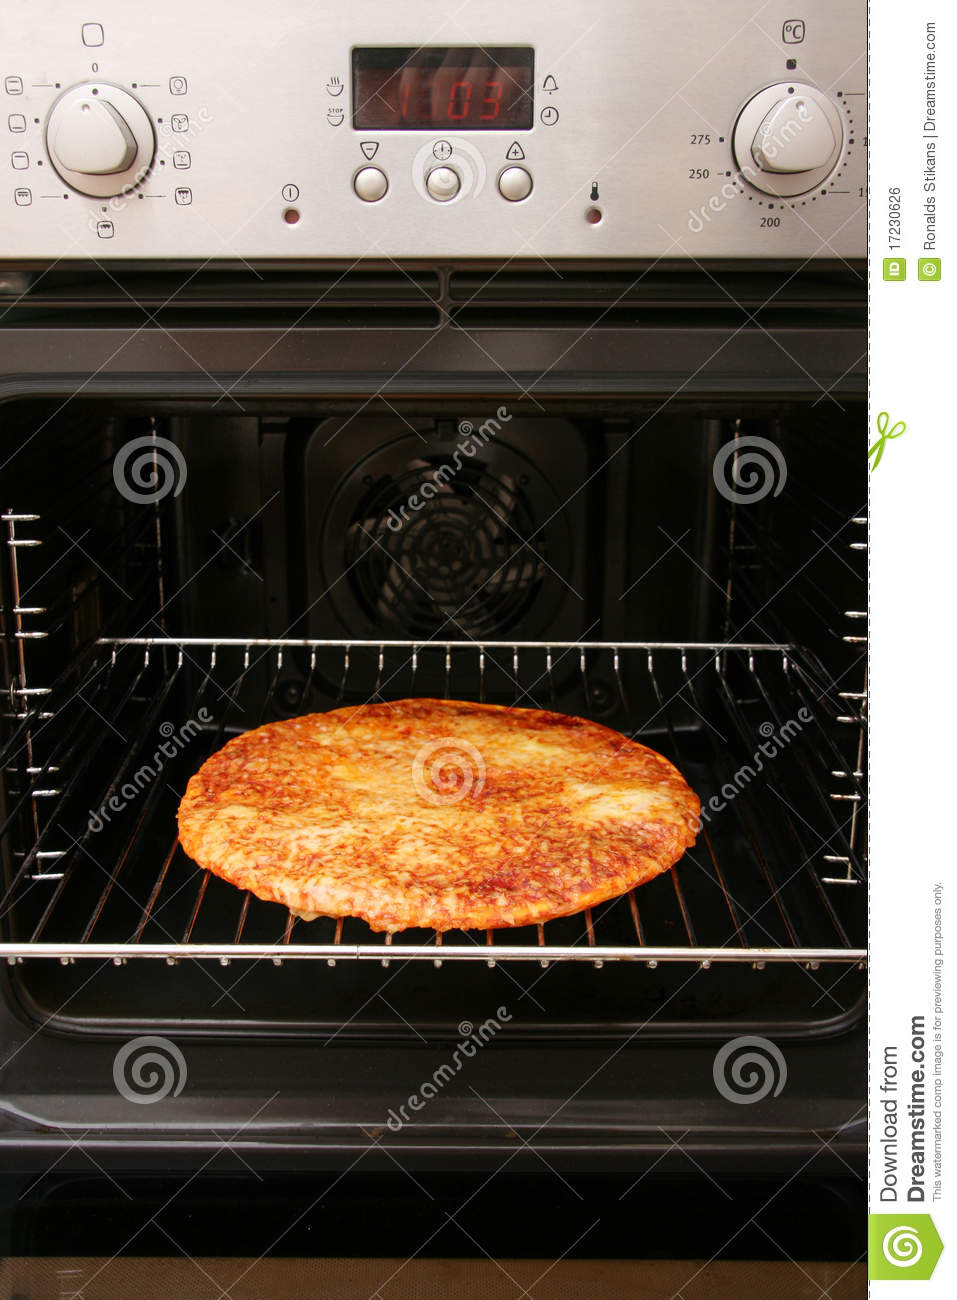 how to cook homemade pizza in oven